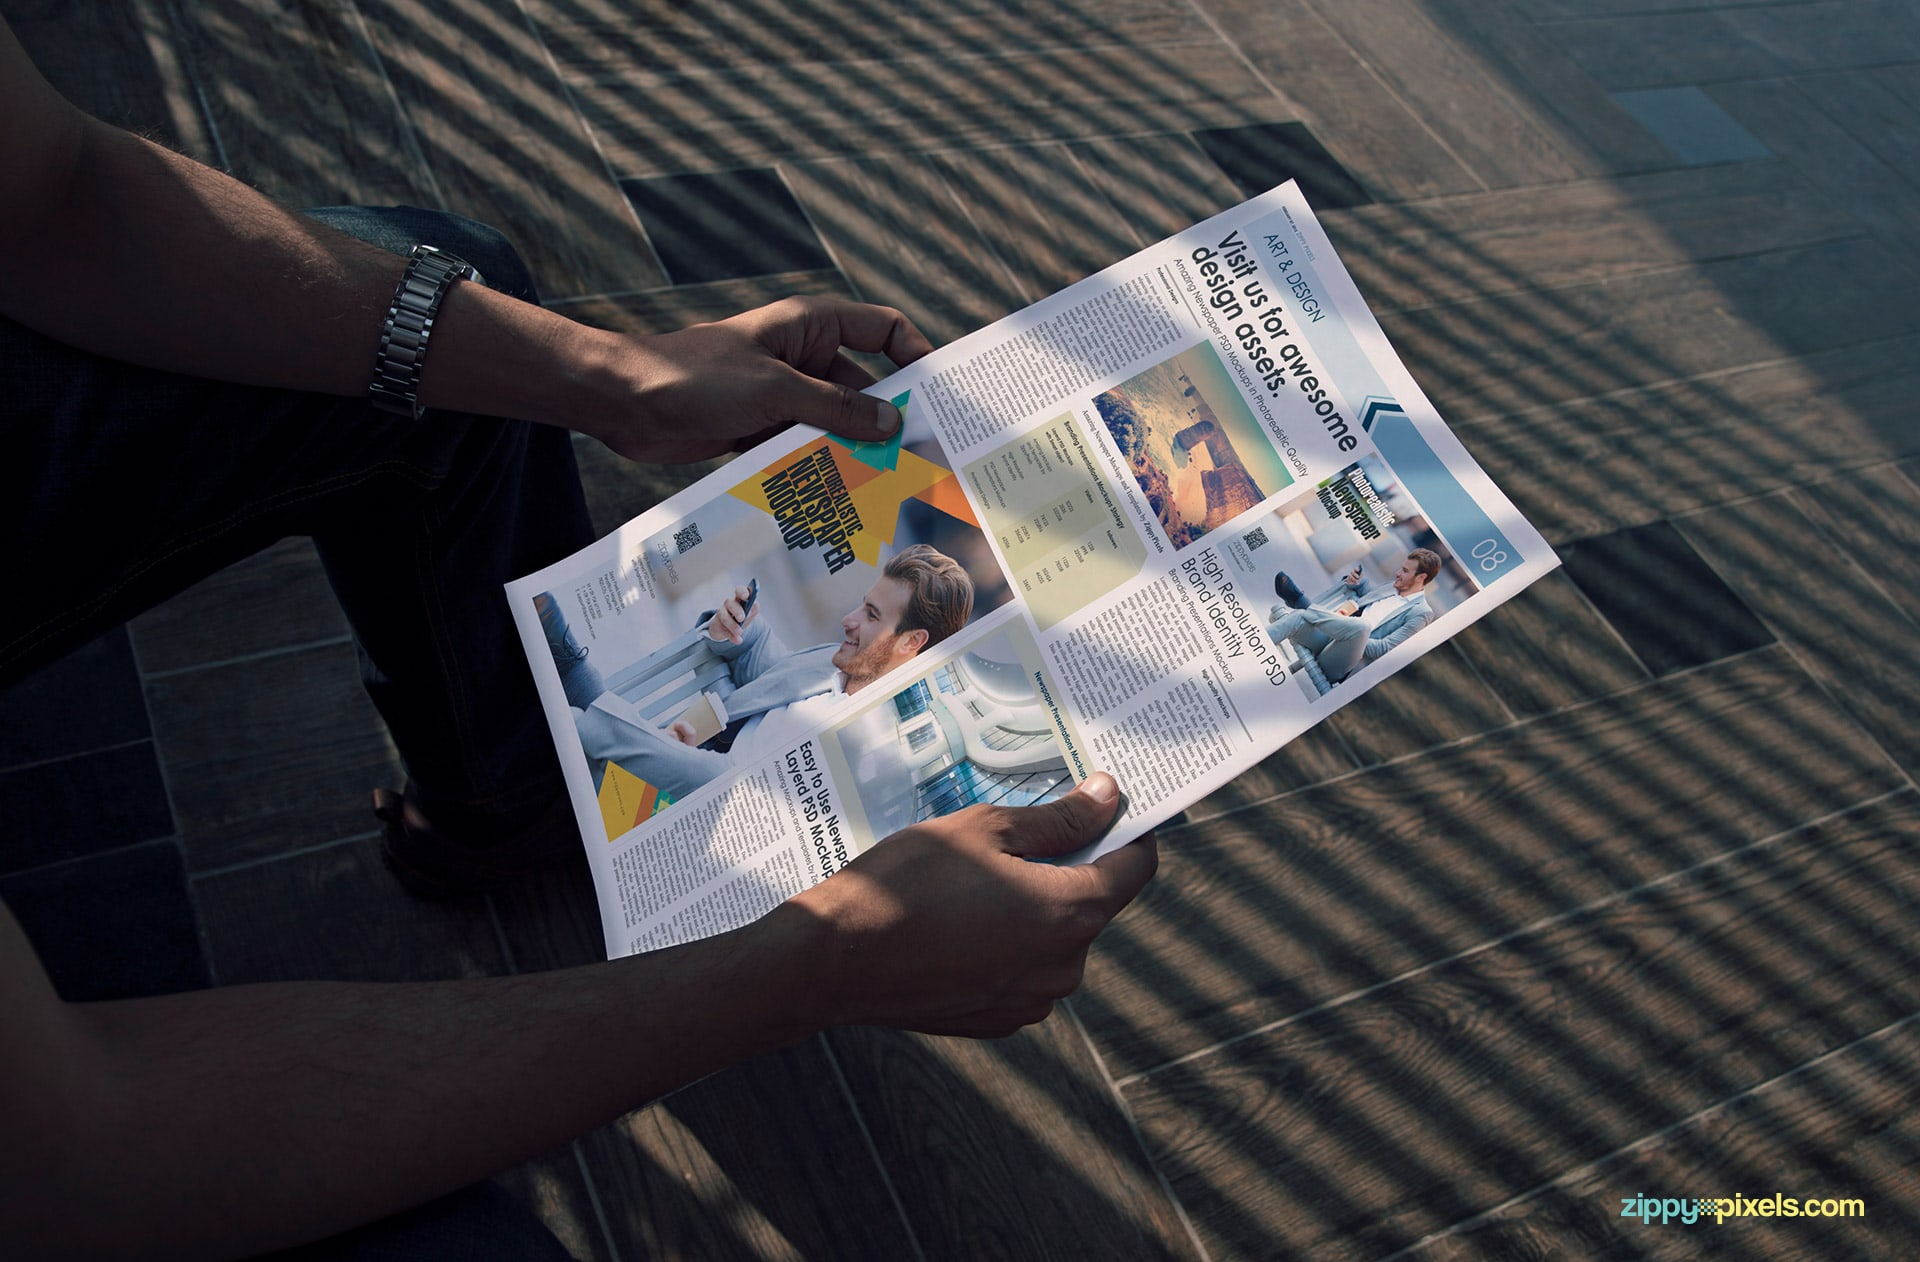 Outdoor newspaper ad mockups showing a person reading newspaper